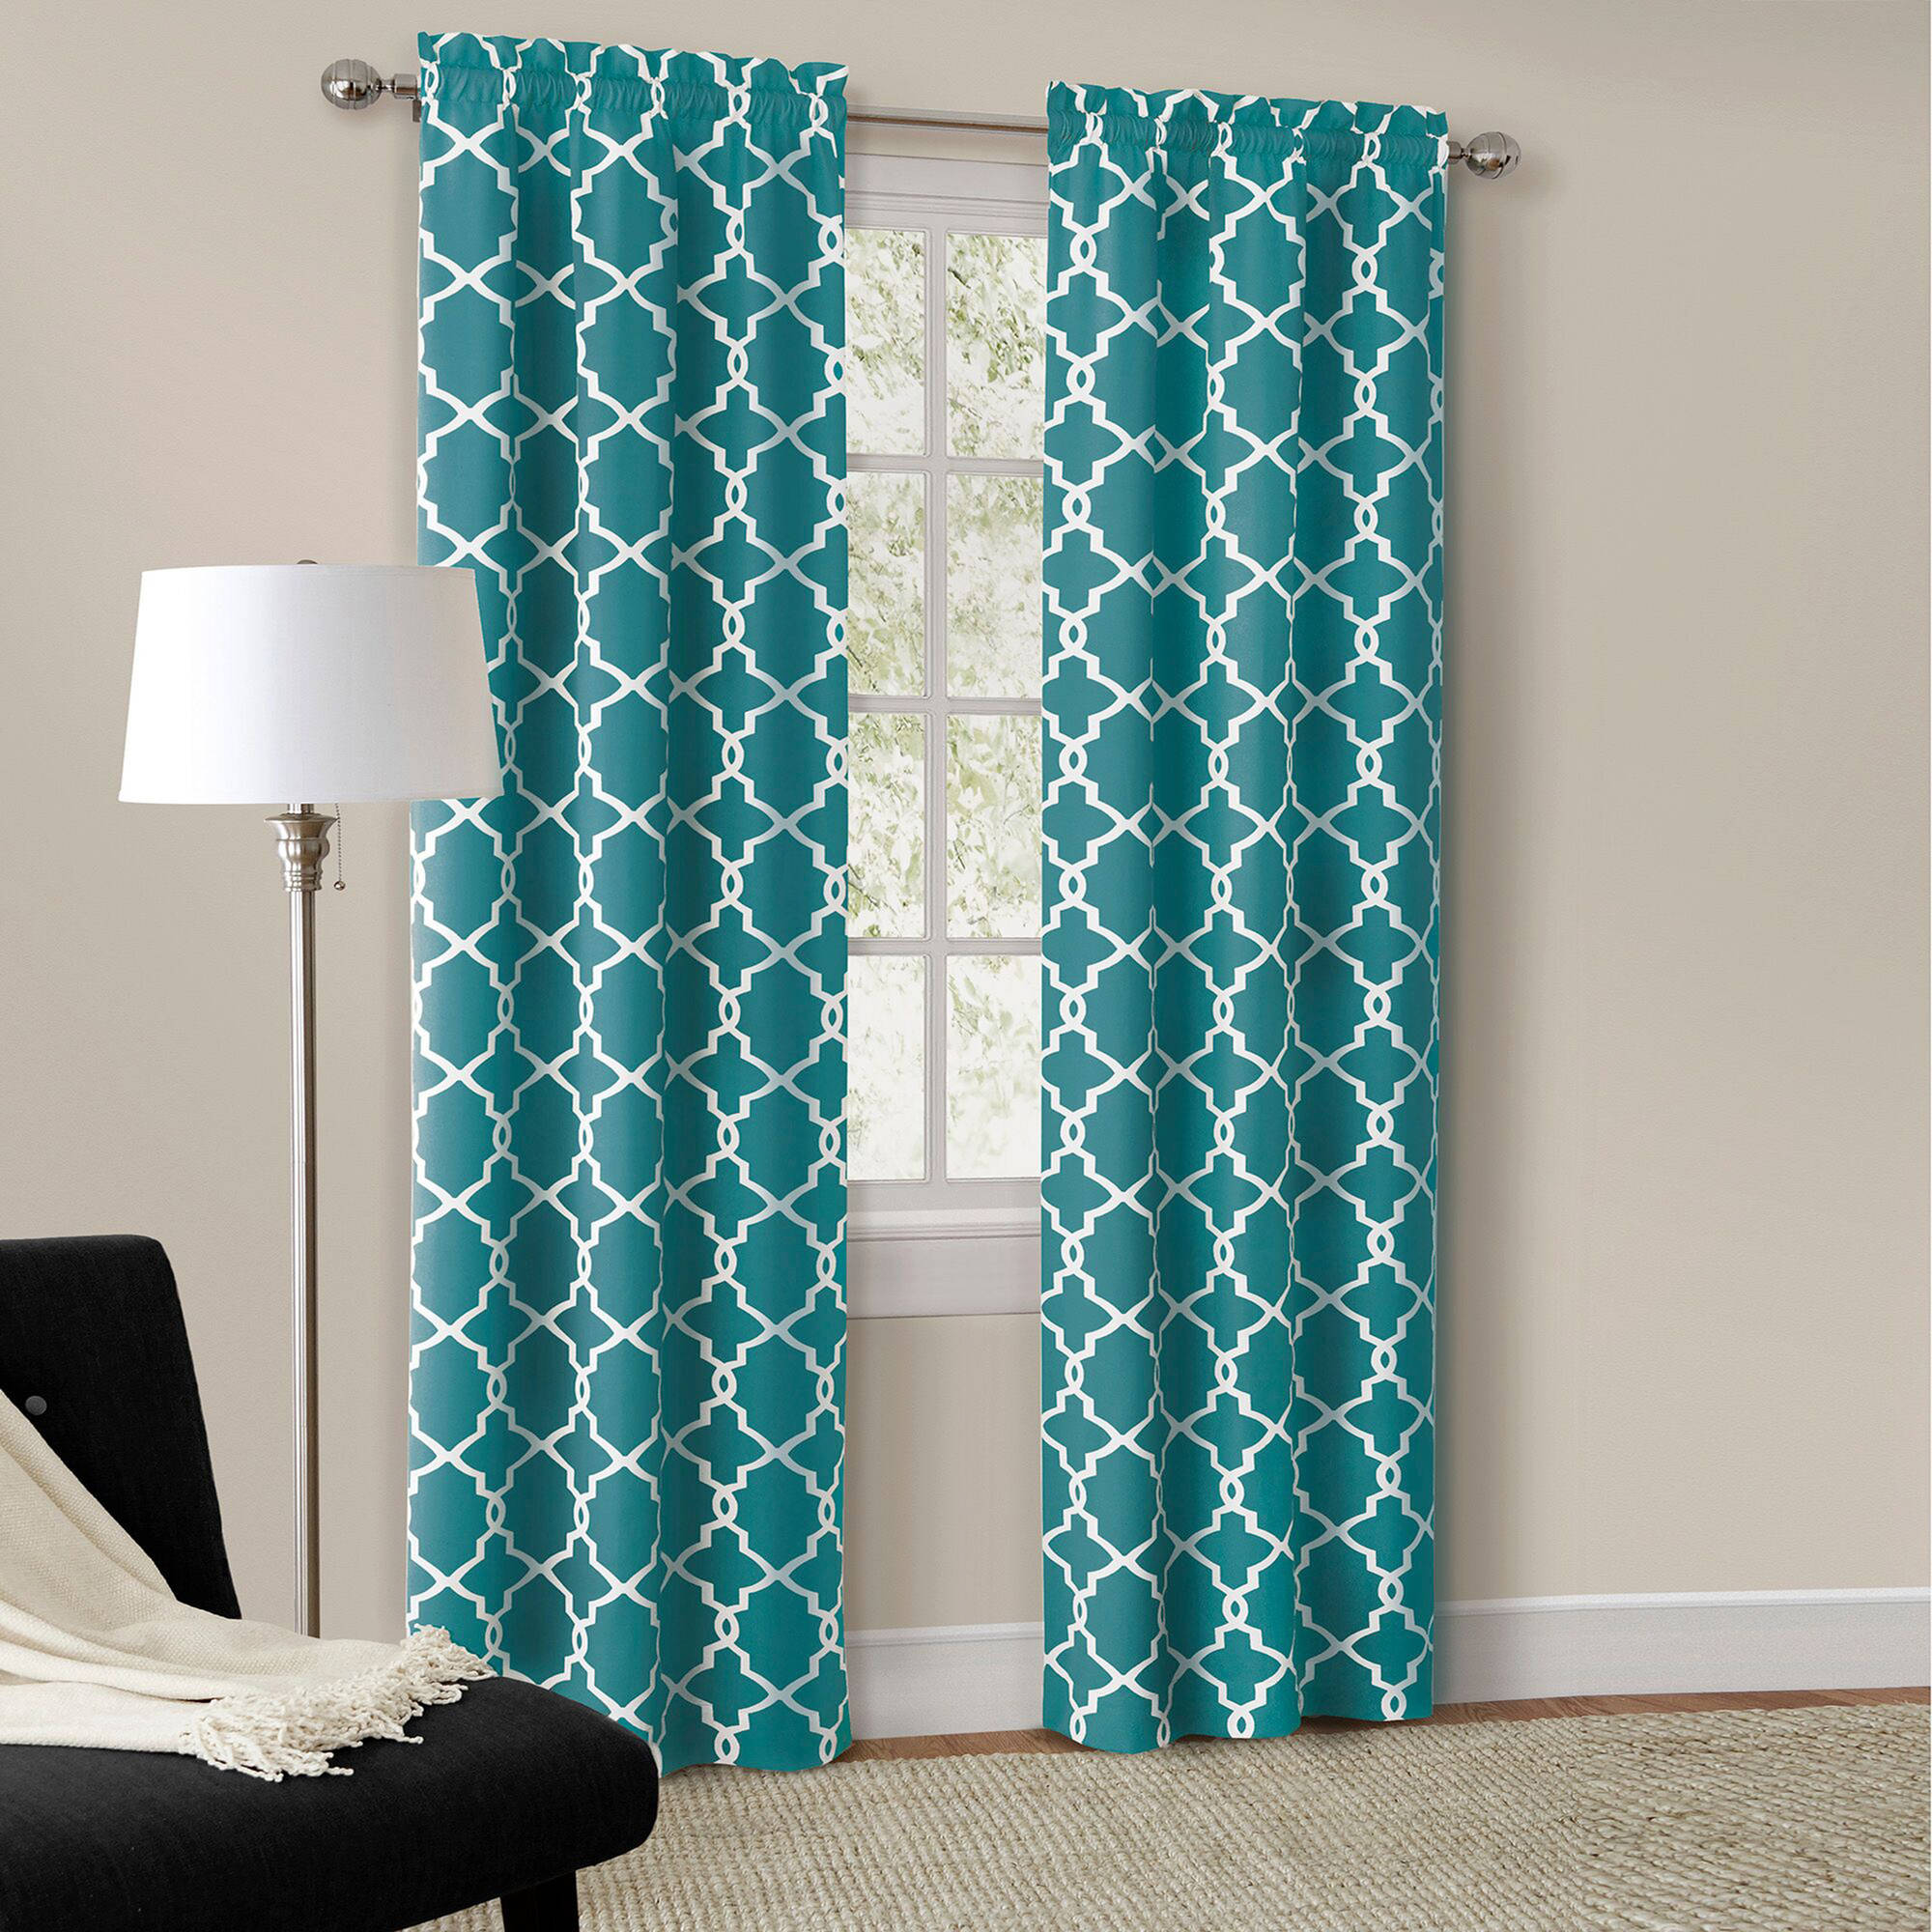 Mainstays Calix Fashion Window Curtain, Set of 2 - Walmart.com